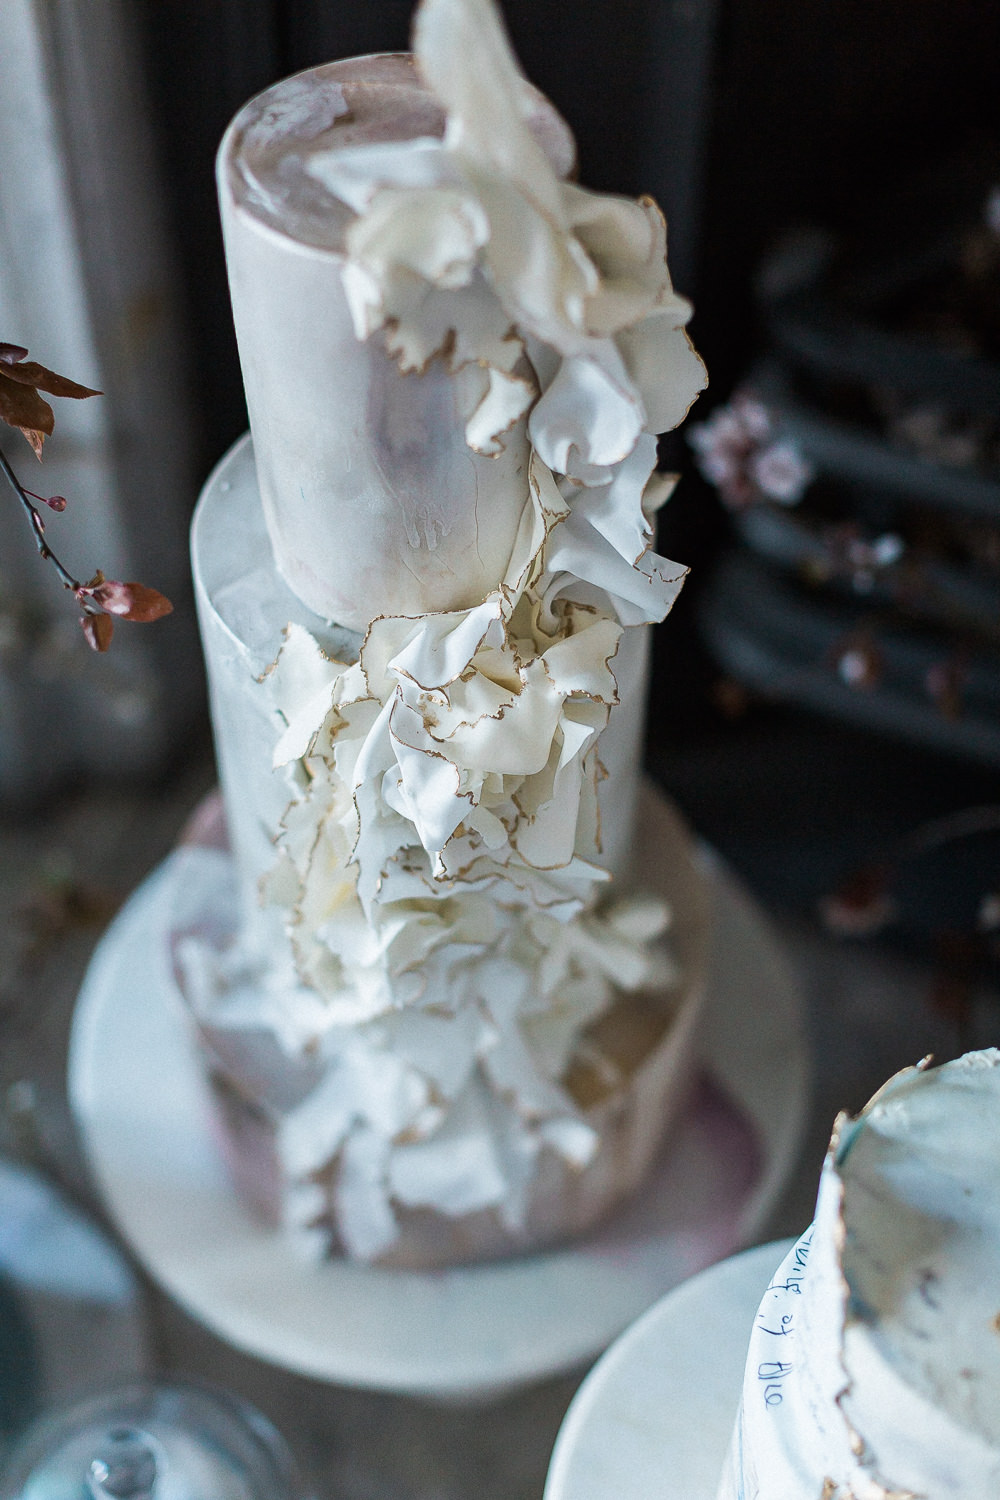 Modern Dance Ballet Inspired Editorial Fine Art Somerley House Dusty Pink Kate Burt Cakes | Romantic Soft Wedding Ideas Siobhan H Photography